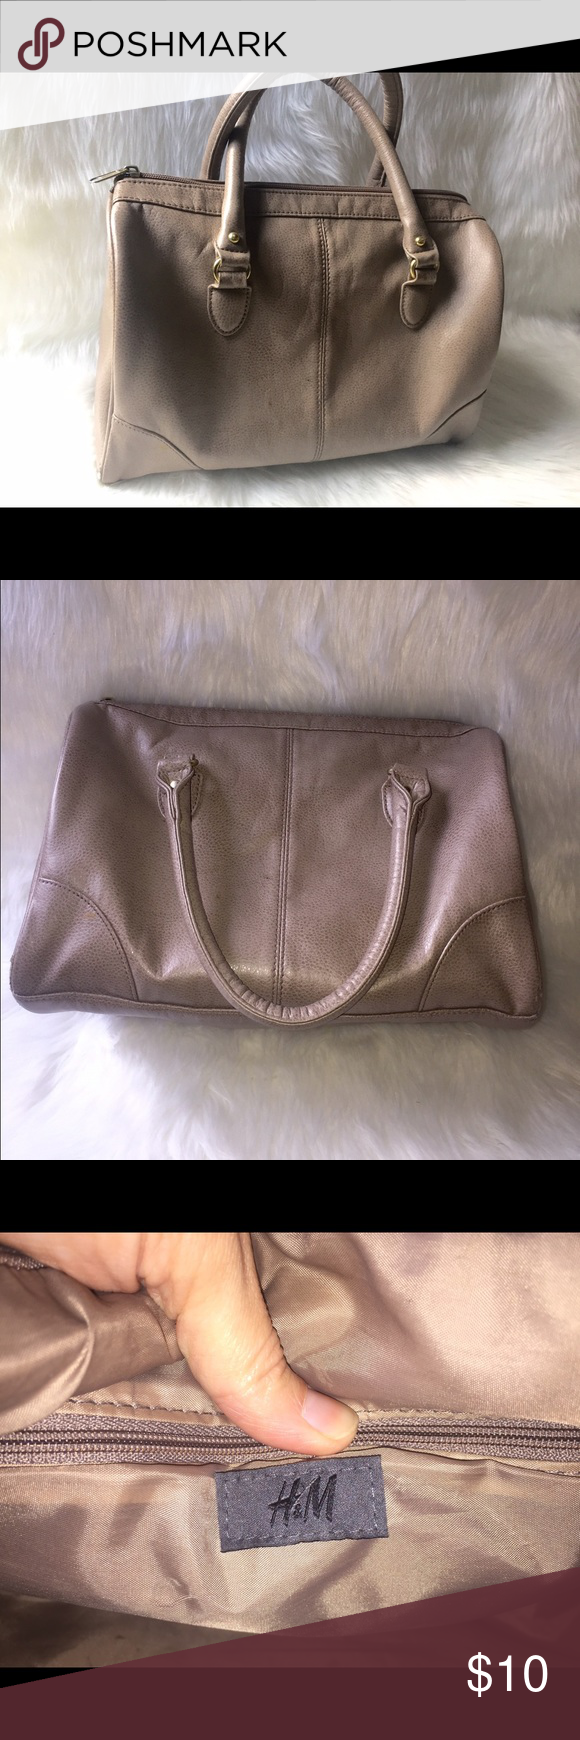 H&M hand bag Cute, clean and stylish. This taupe colored hand bag is versatile, easy to match with almost anything! Features a zippered pocket and 2 slit pockets inside. Plenty of room for carrying all your essentials for daily life. No snags or rips, very clean and could be mistaken for brand new! H&M Bags